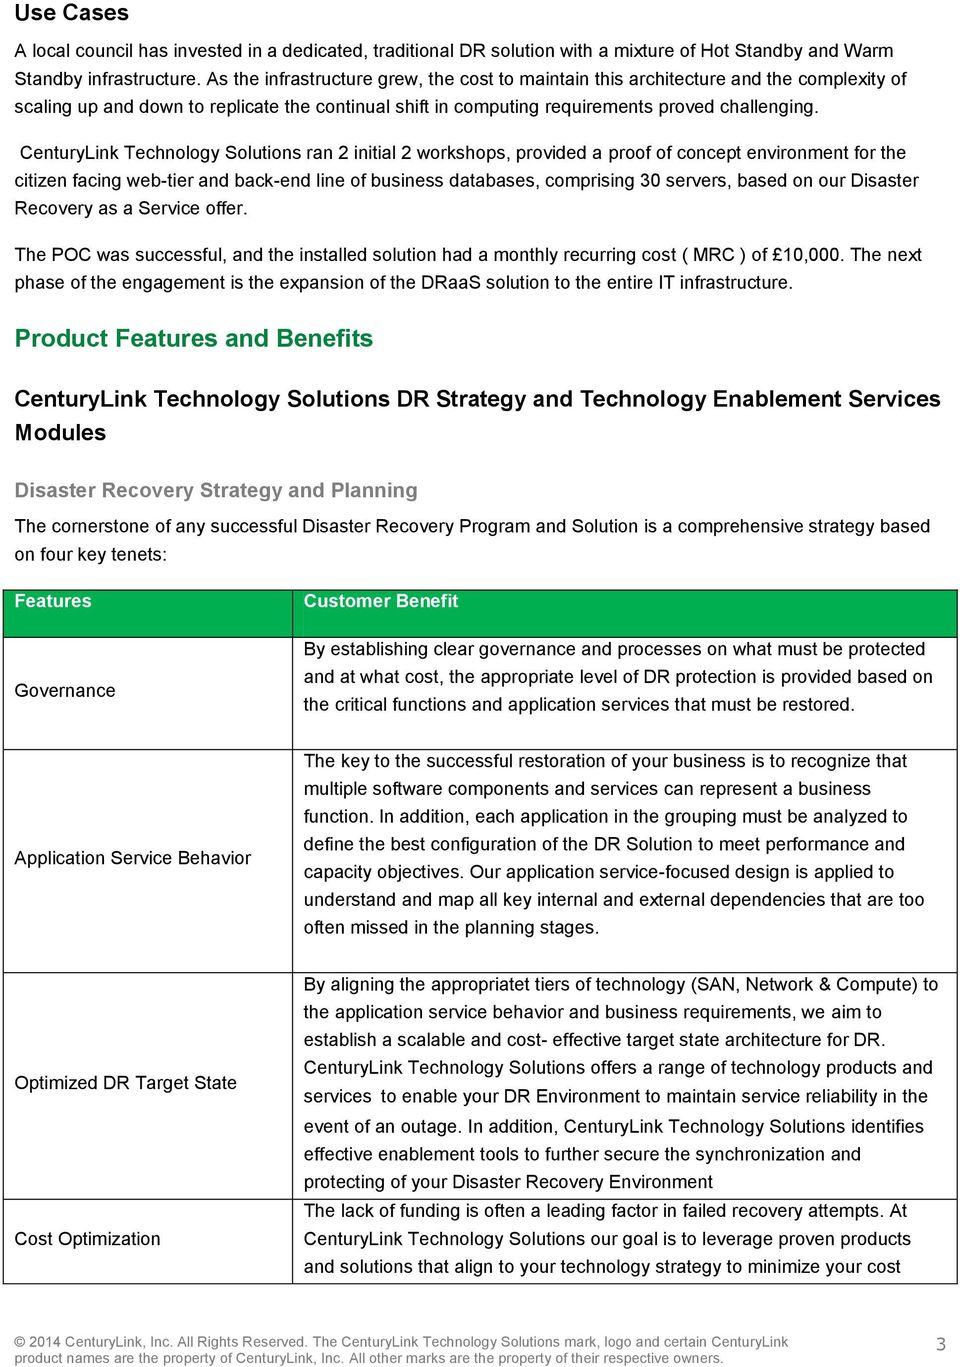 CenturyLink Technology Solutions ran 2 initial 2 workshops, provided a proof of concept environment for the citizen facing web-tier and back-end line of business databases, comprising 30 servers,